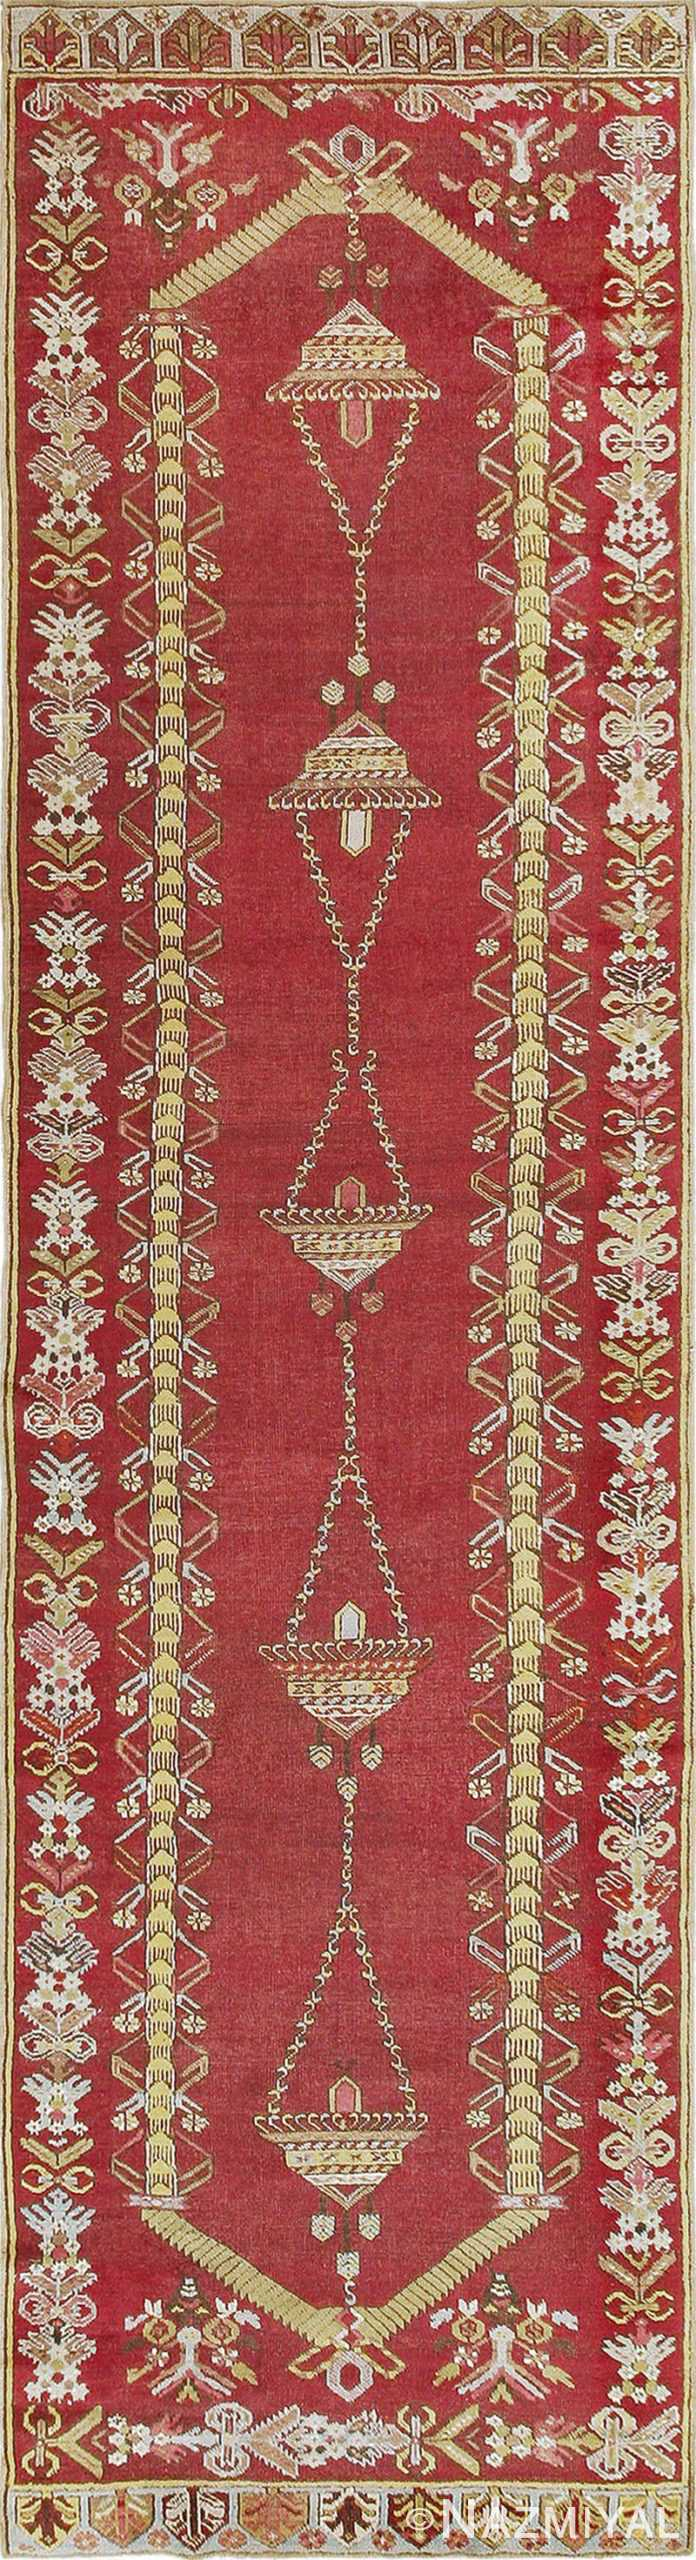 Antique Turkish Kirshehir Runner #2389 by Nazmiyal Antique Rugs